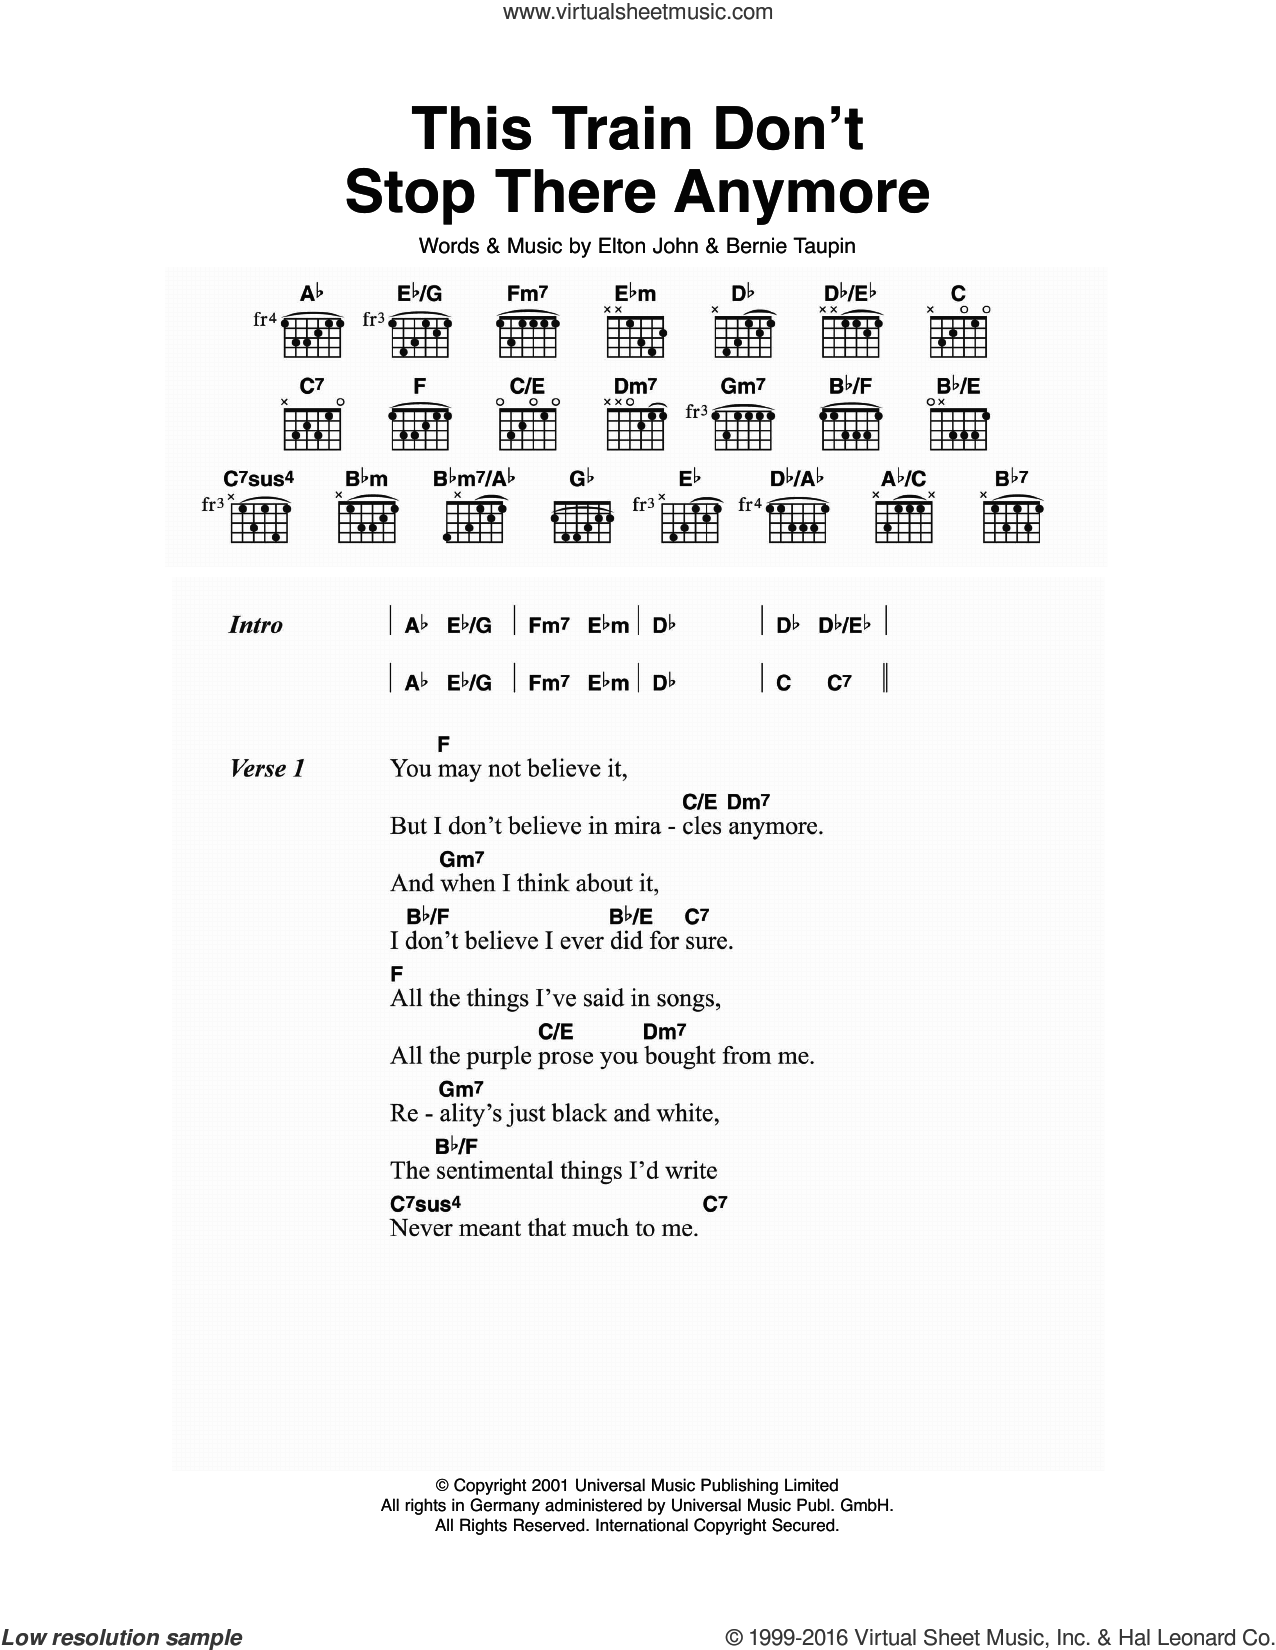 This Train Don't Stop There Anymore sheet music for guitar (chords) by Bernie Taupin